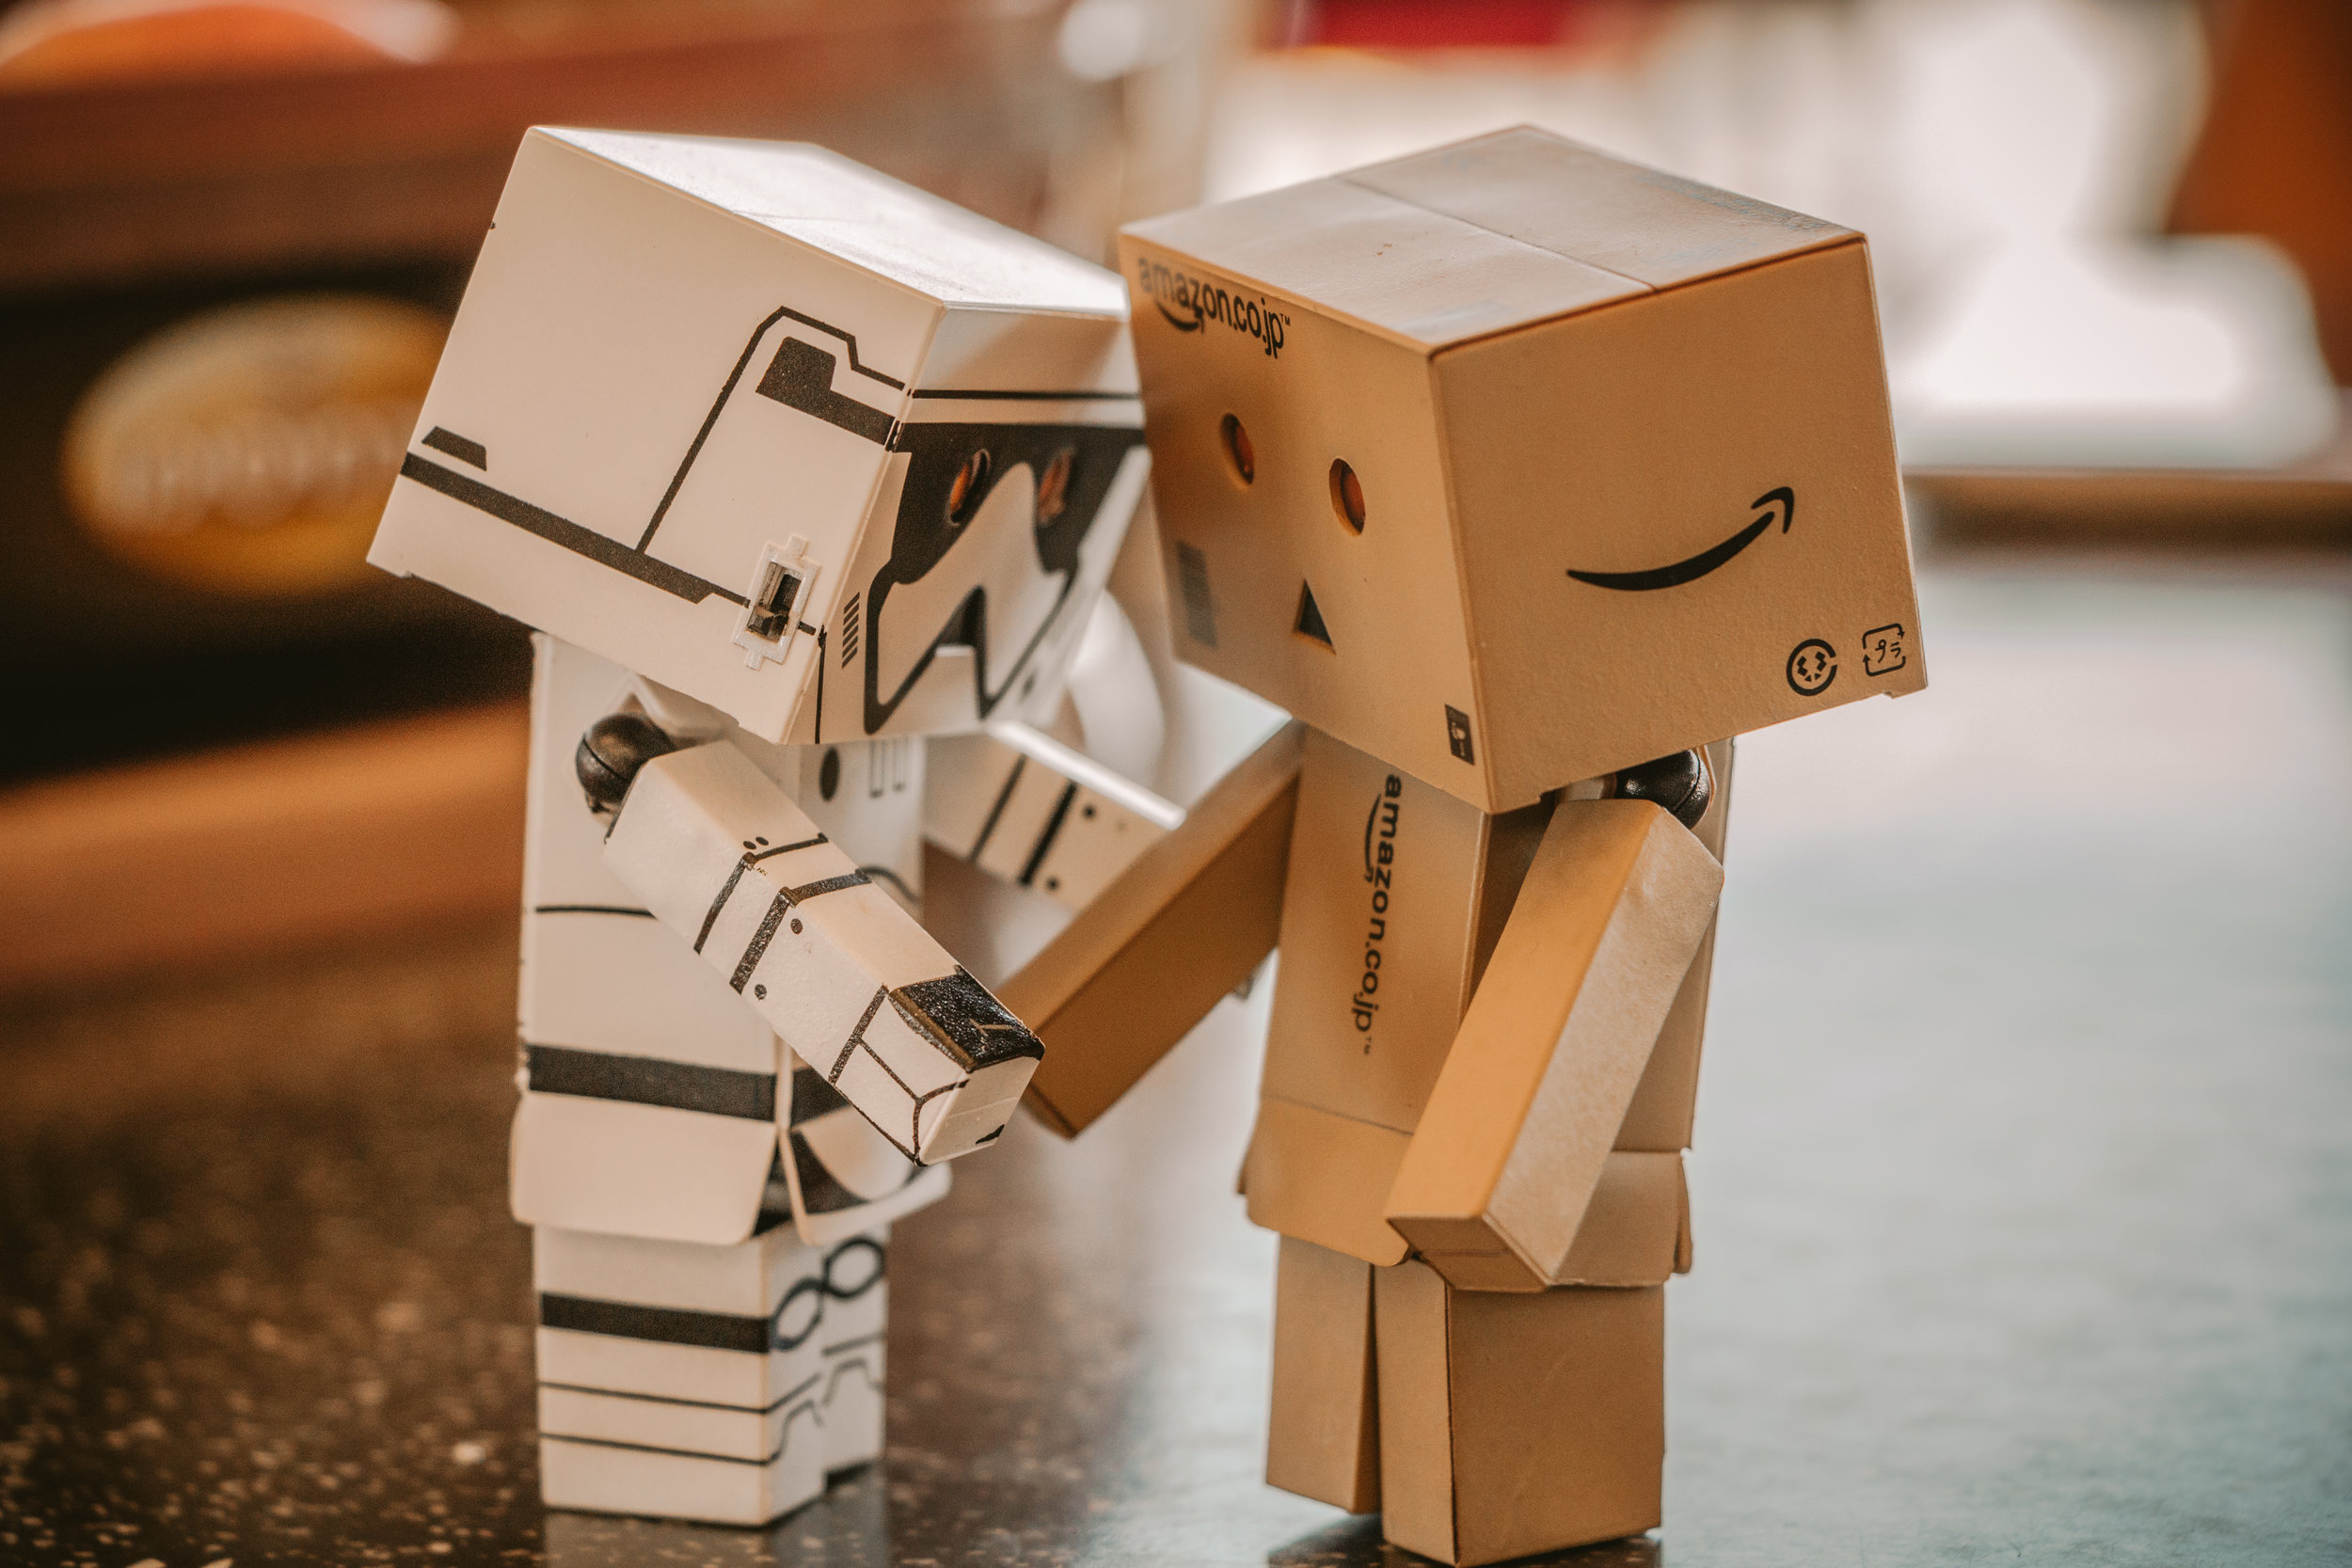 Photo by Matan Segev from Pexels https://www.pexels.com/photo/photo-of-white-and-brown-cardboard-box-toy-figure-678308/